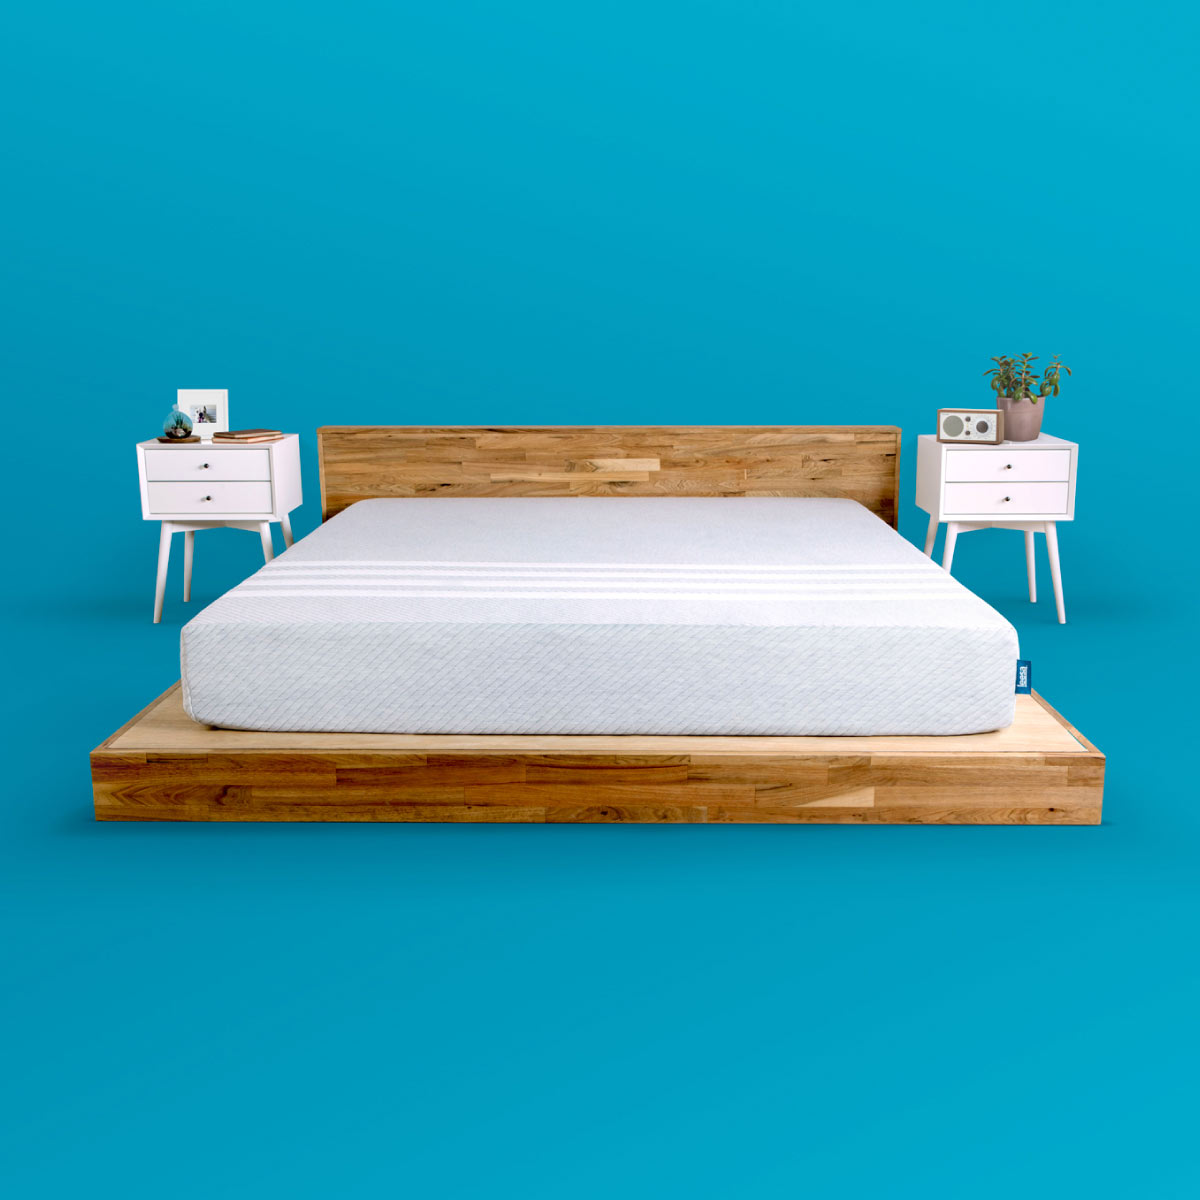 Shop the Leesa Mattress | Over 11,000+ 5-Star Reviews